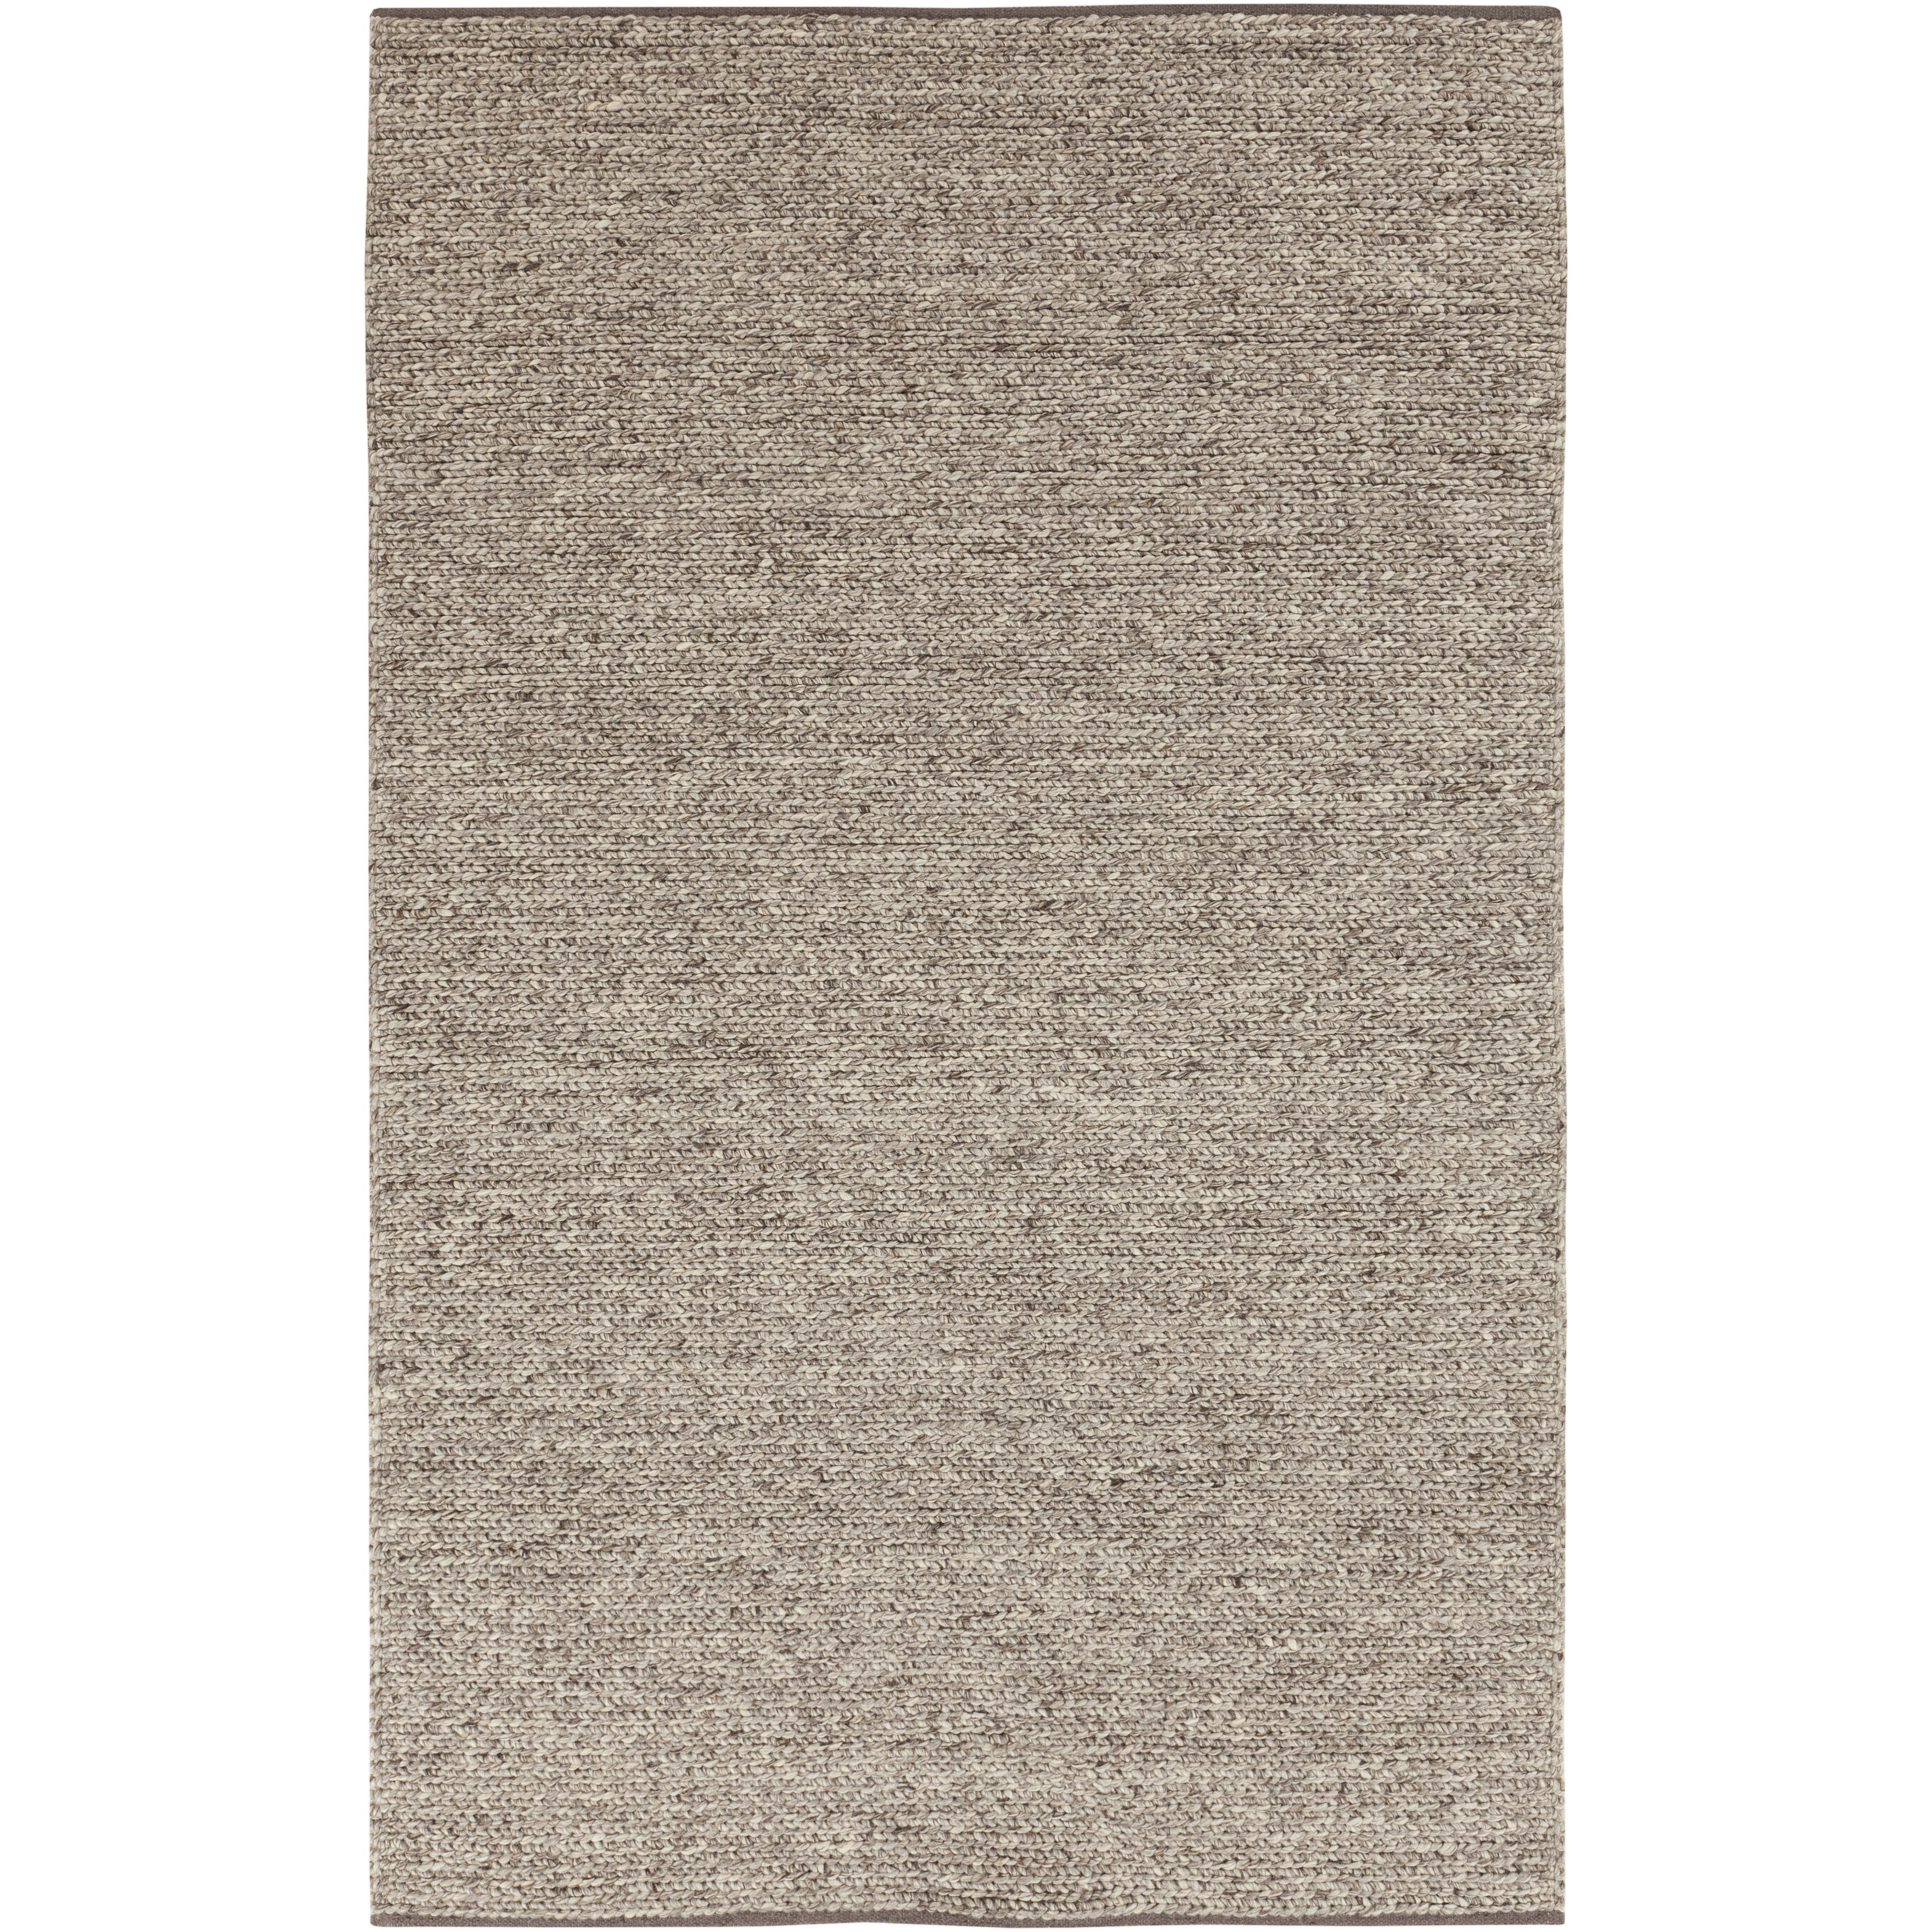 Toccoa 2' x 3' by Ruby-Gordon Accents at Ruby Gordon Home